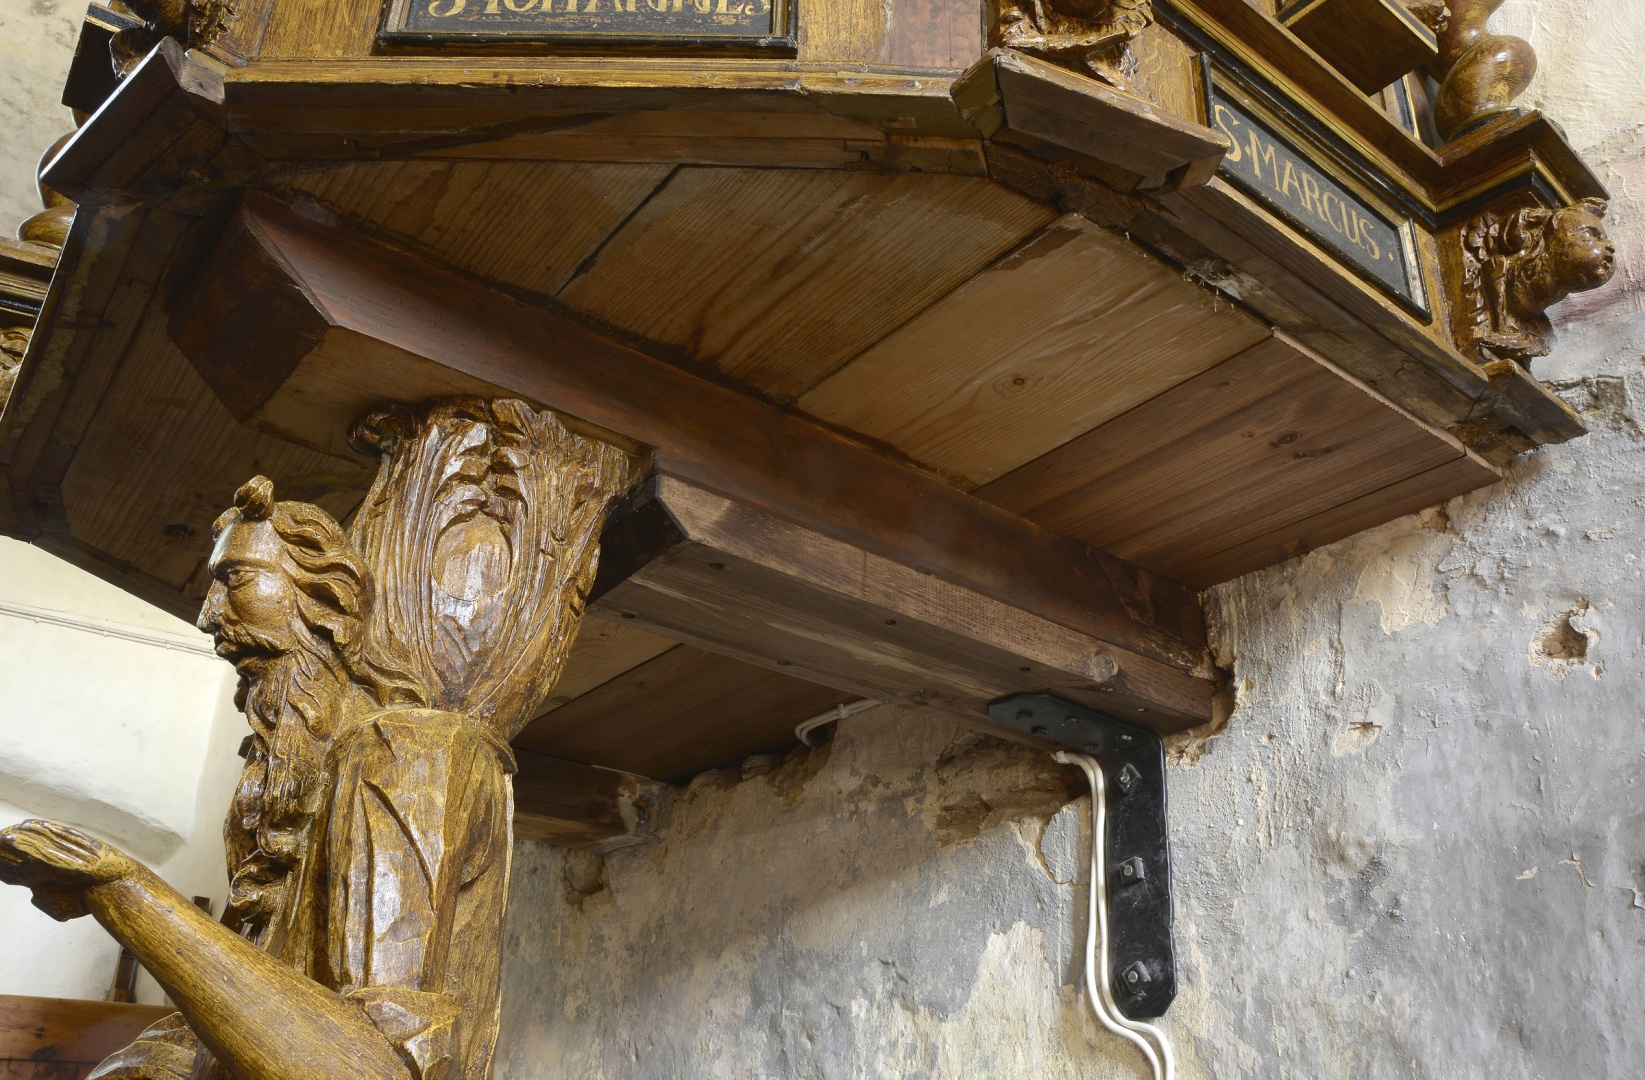 ill 22. The groundsel of the pulpit's floor was anchored into the wall with a new forged quoin.